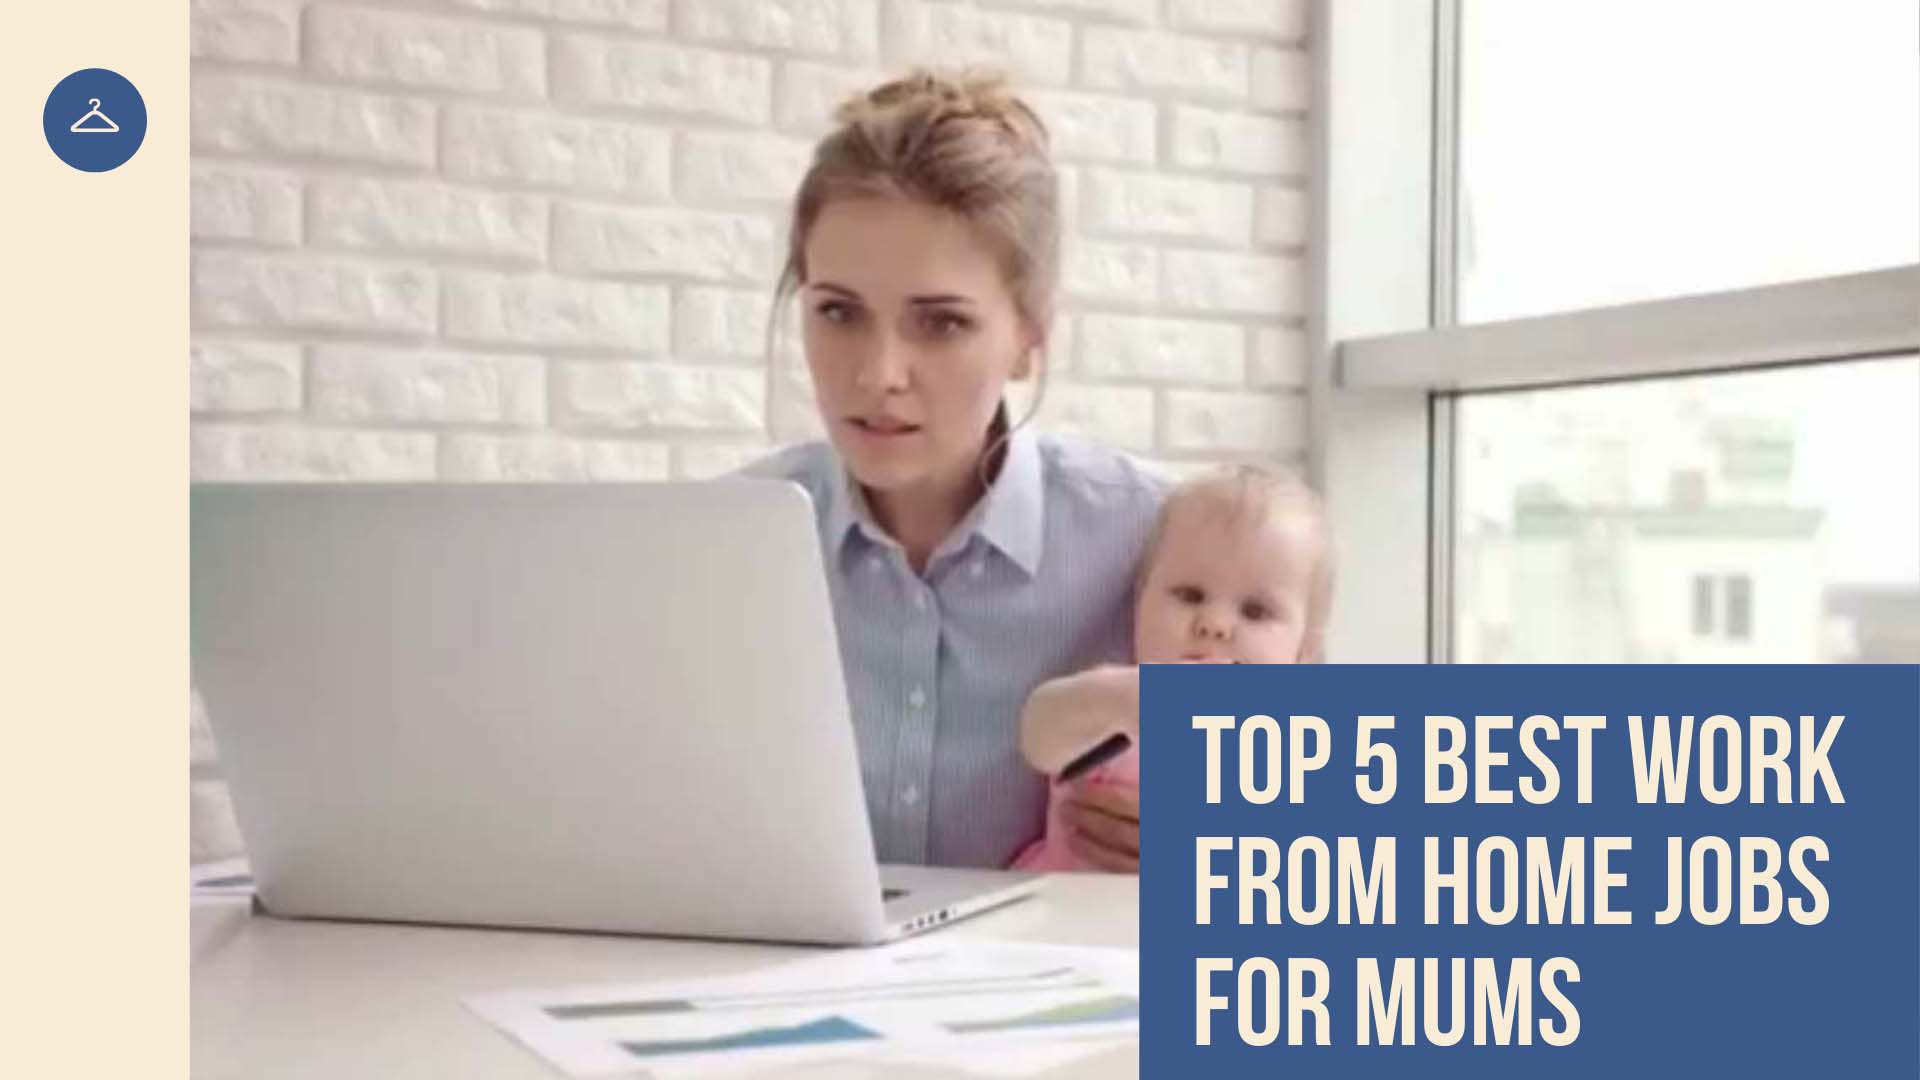 Top 5 Best Work From Home Jobs For Mums